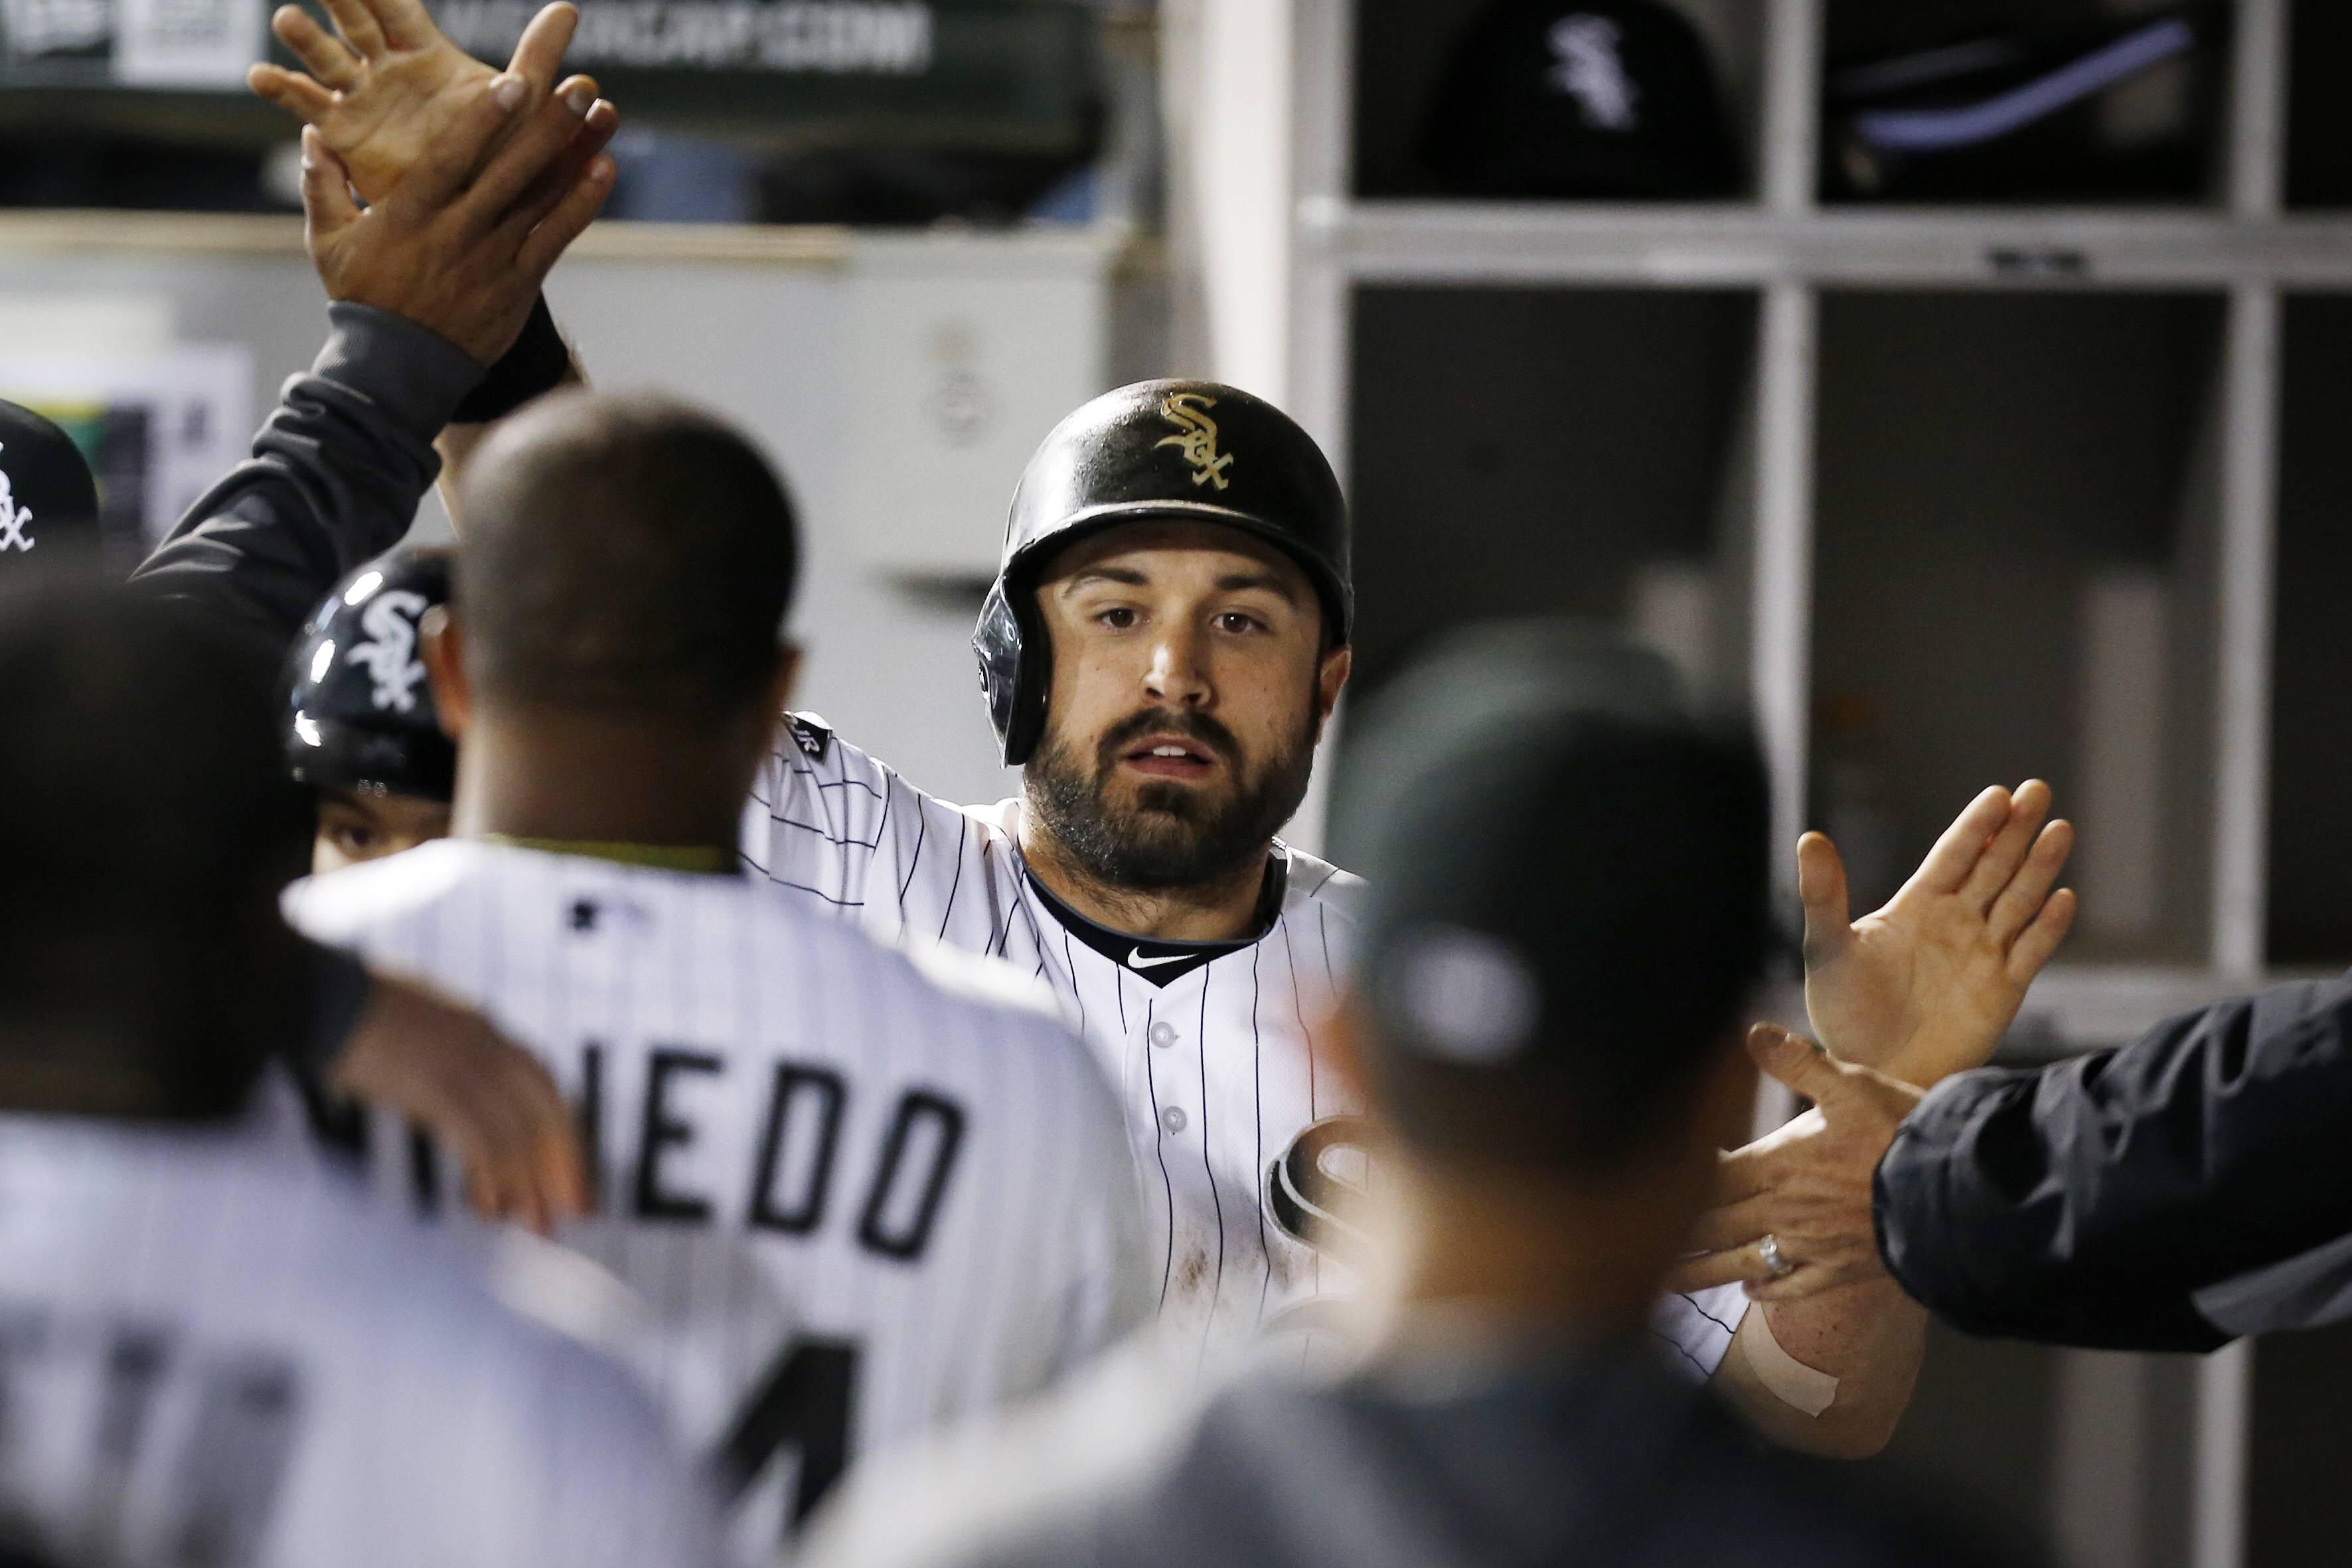 Adam Eaton celebrates after scoring an eighth-inning run against Cleveland on Friday. Eaton, now batting .333, reached on a two-out drag bunt down the first-base line.